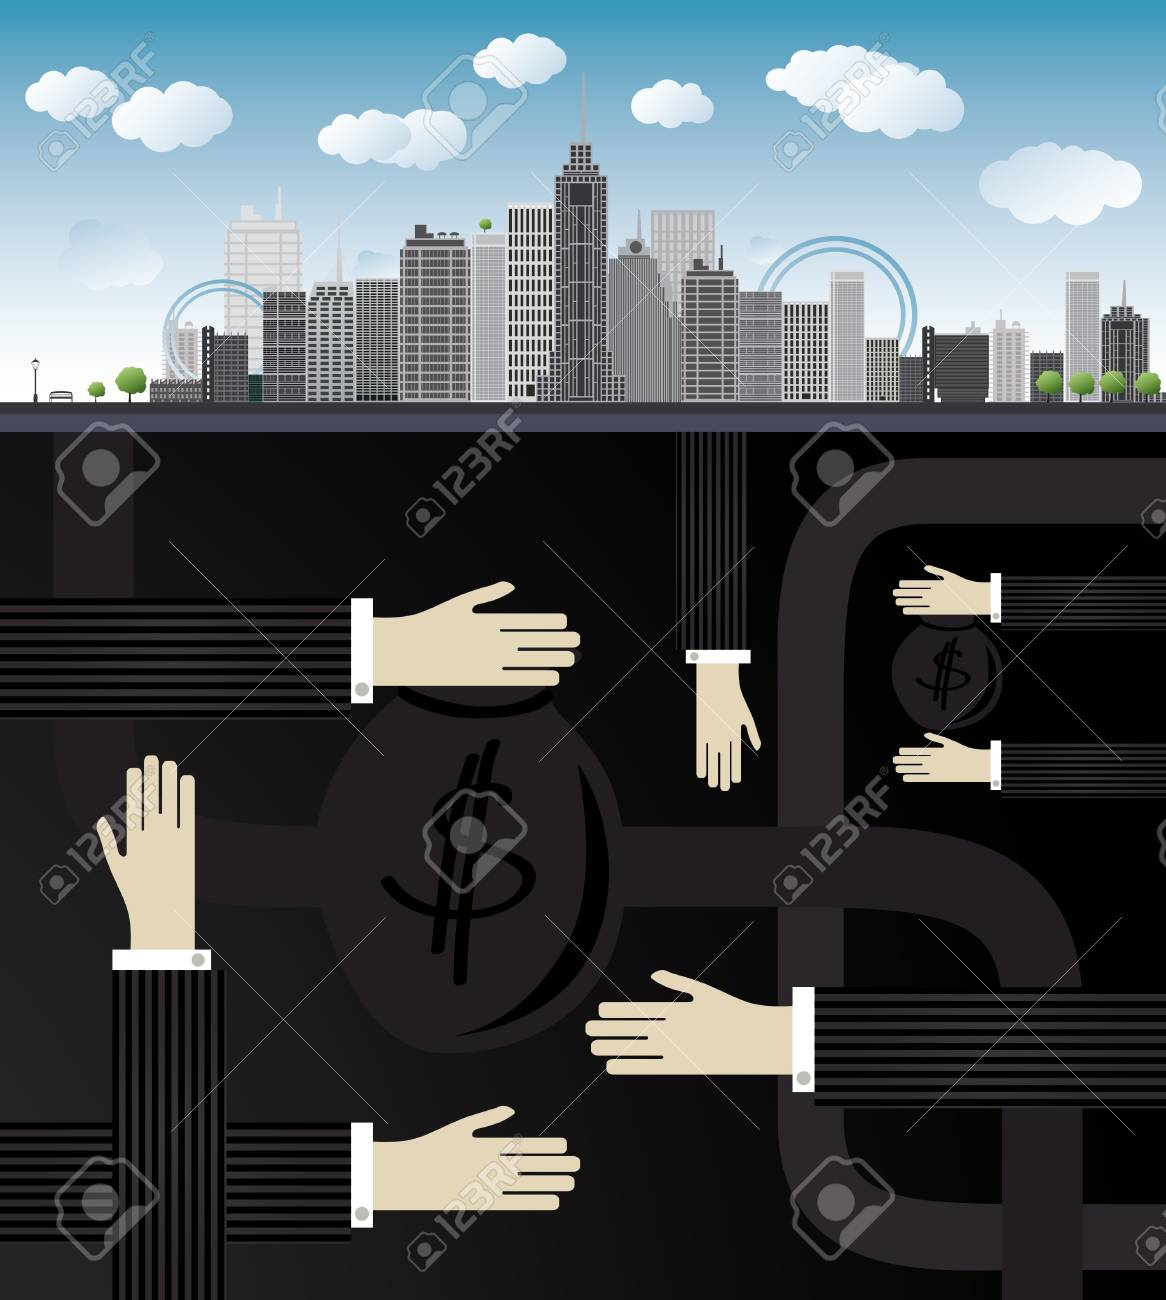 shadow economy illustration. Hand, giving money in bag to other hand, under city Stock Vector - 17474545